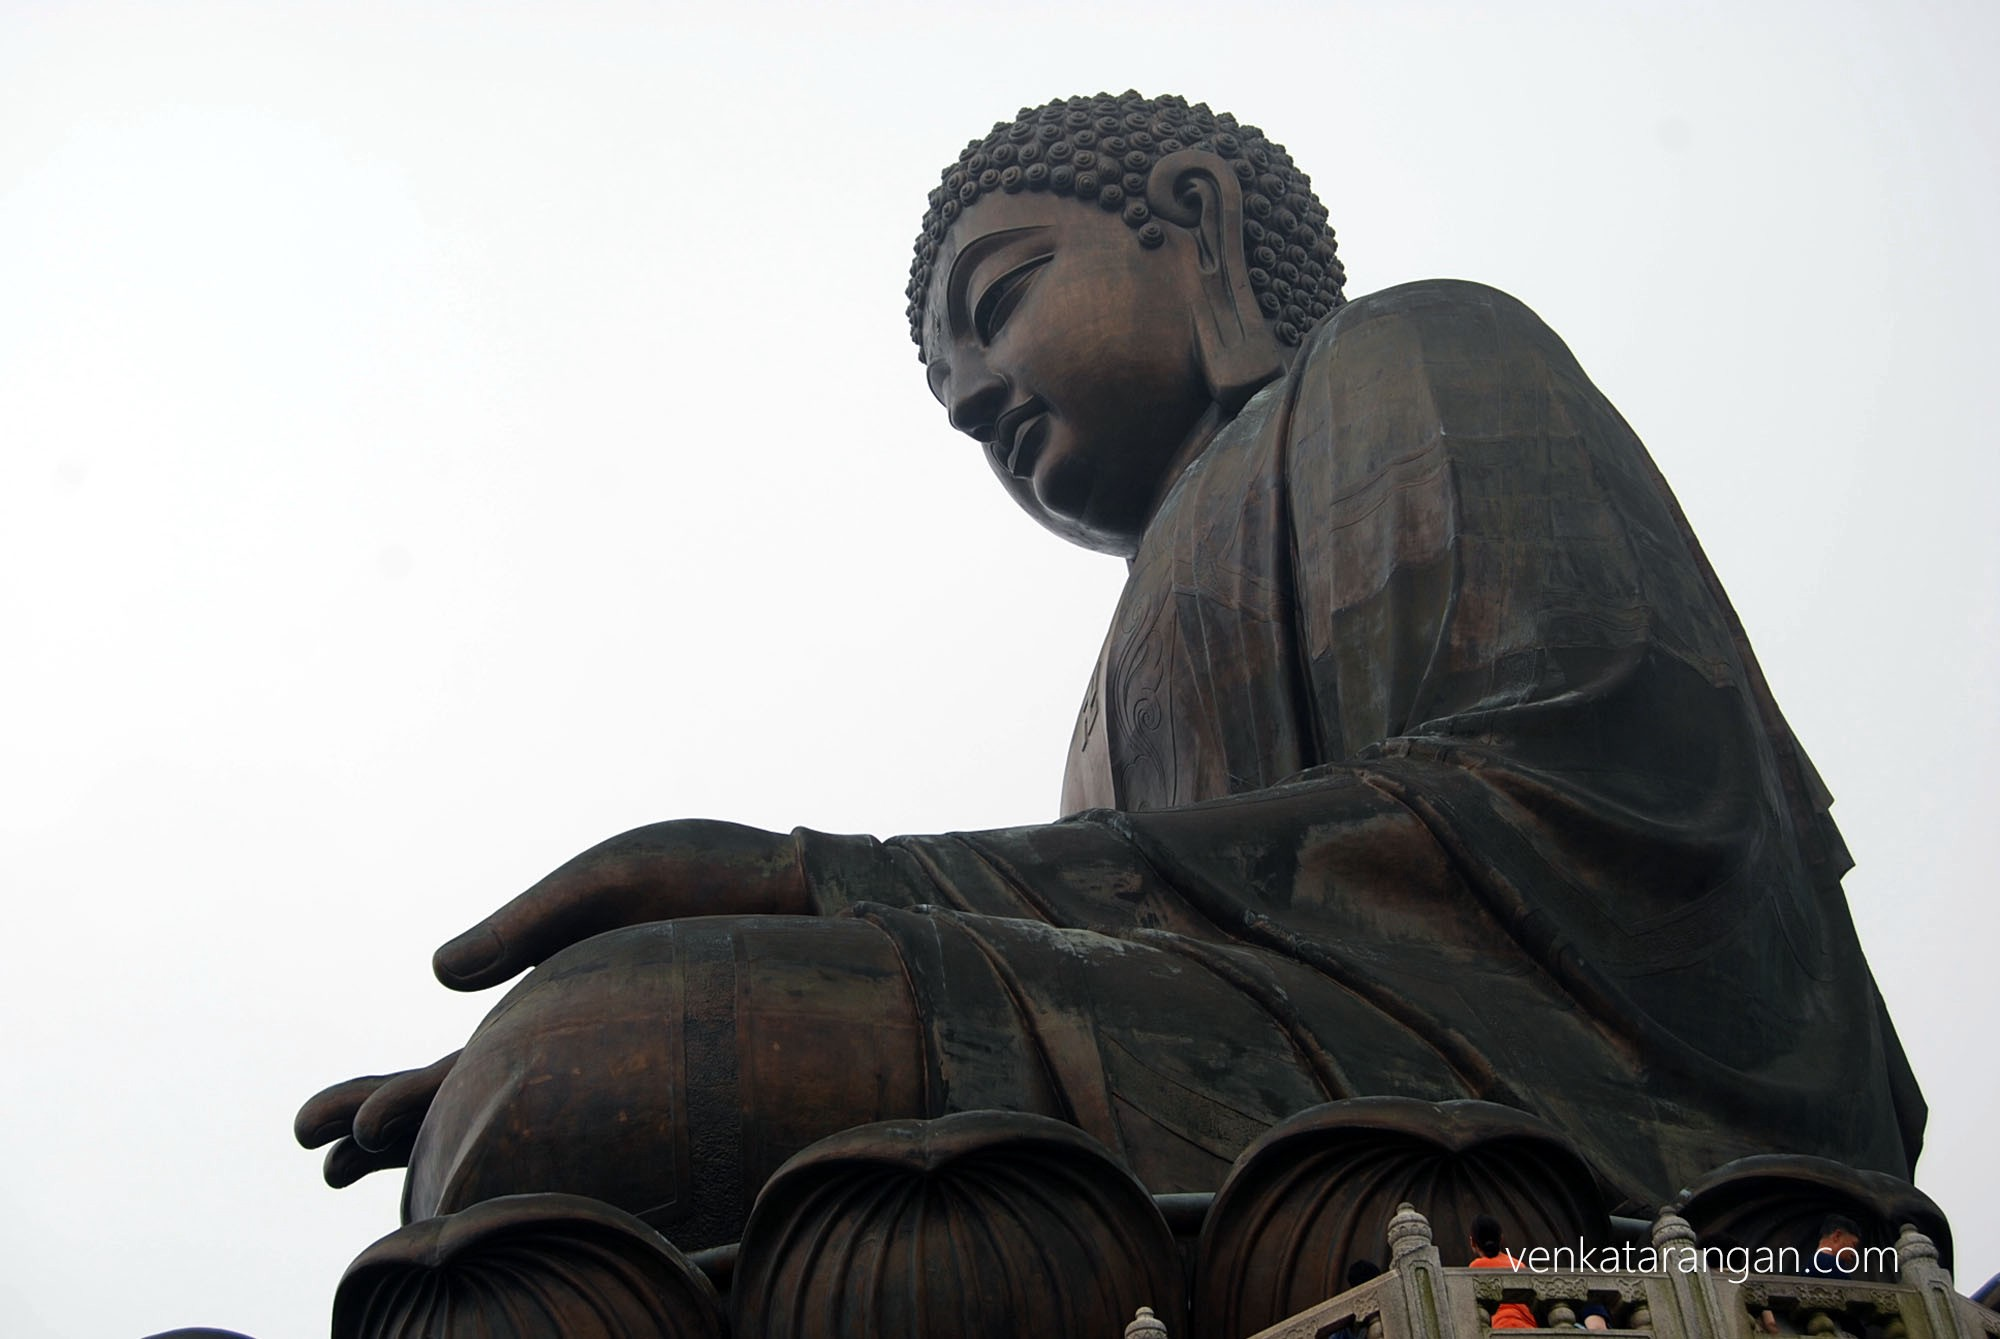 Tian Tan Buddha, also known as the Big Buddha, located at Ngong Ping, Lantau Island, in Hong Kong.